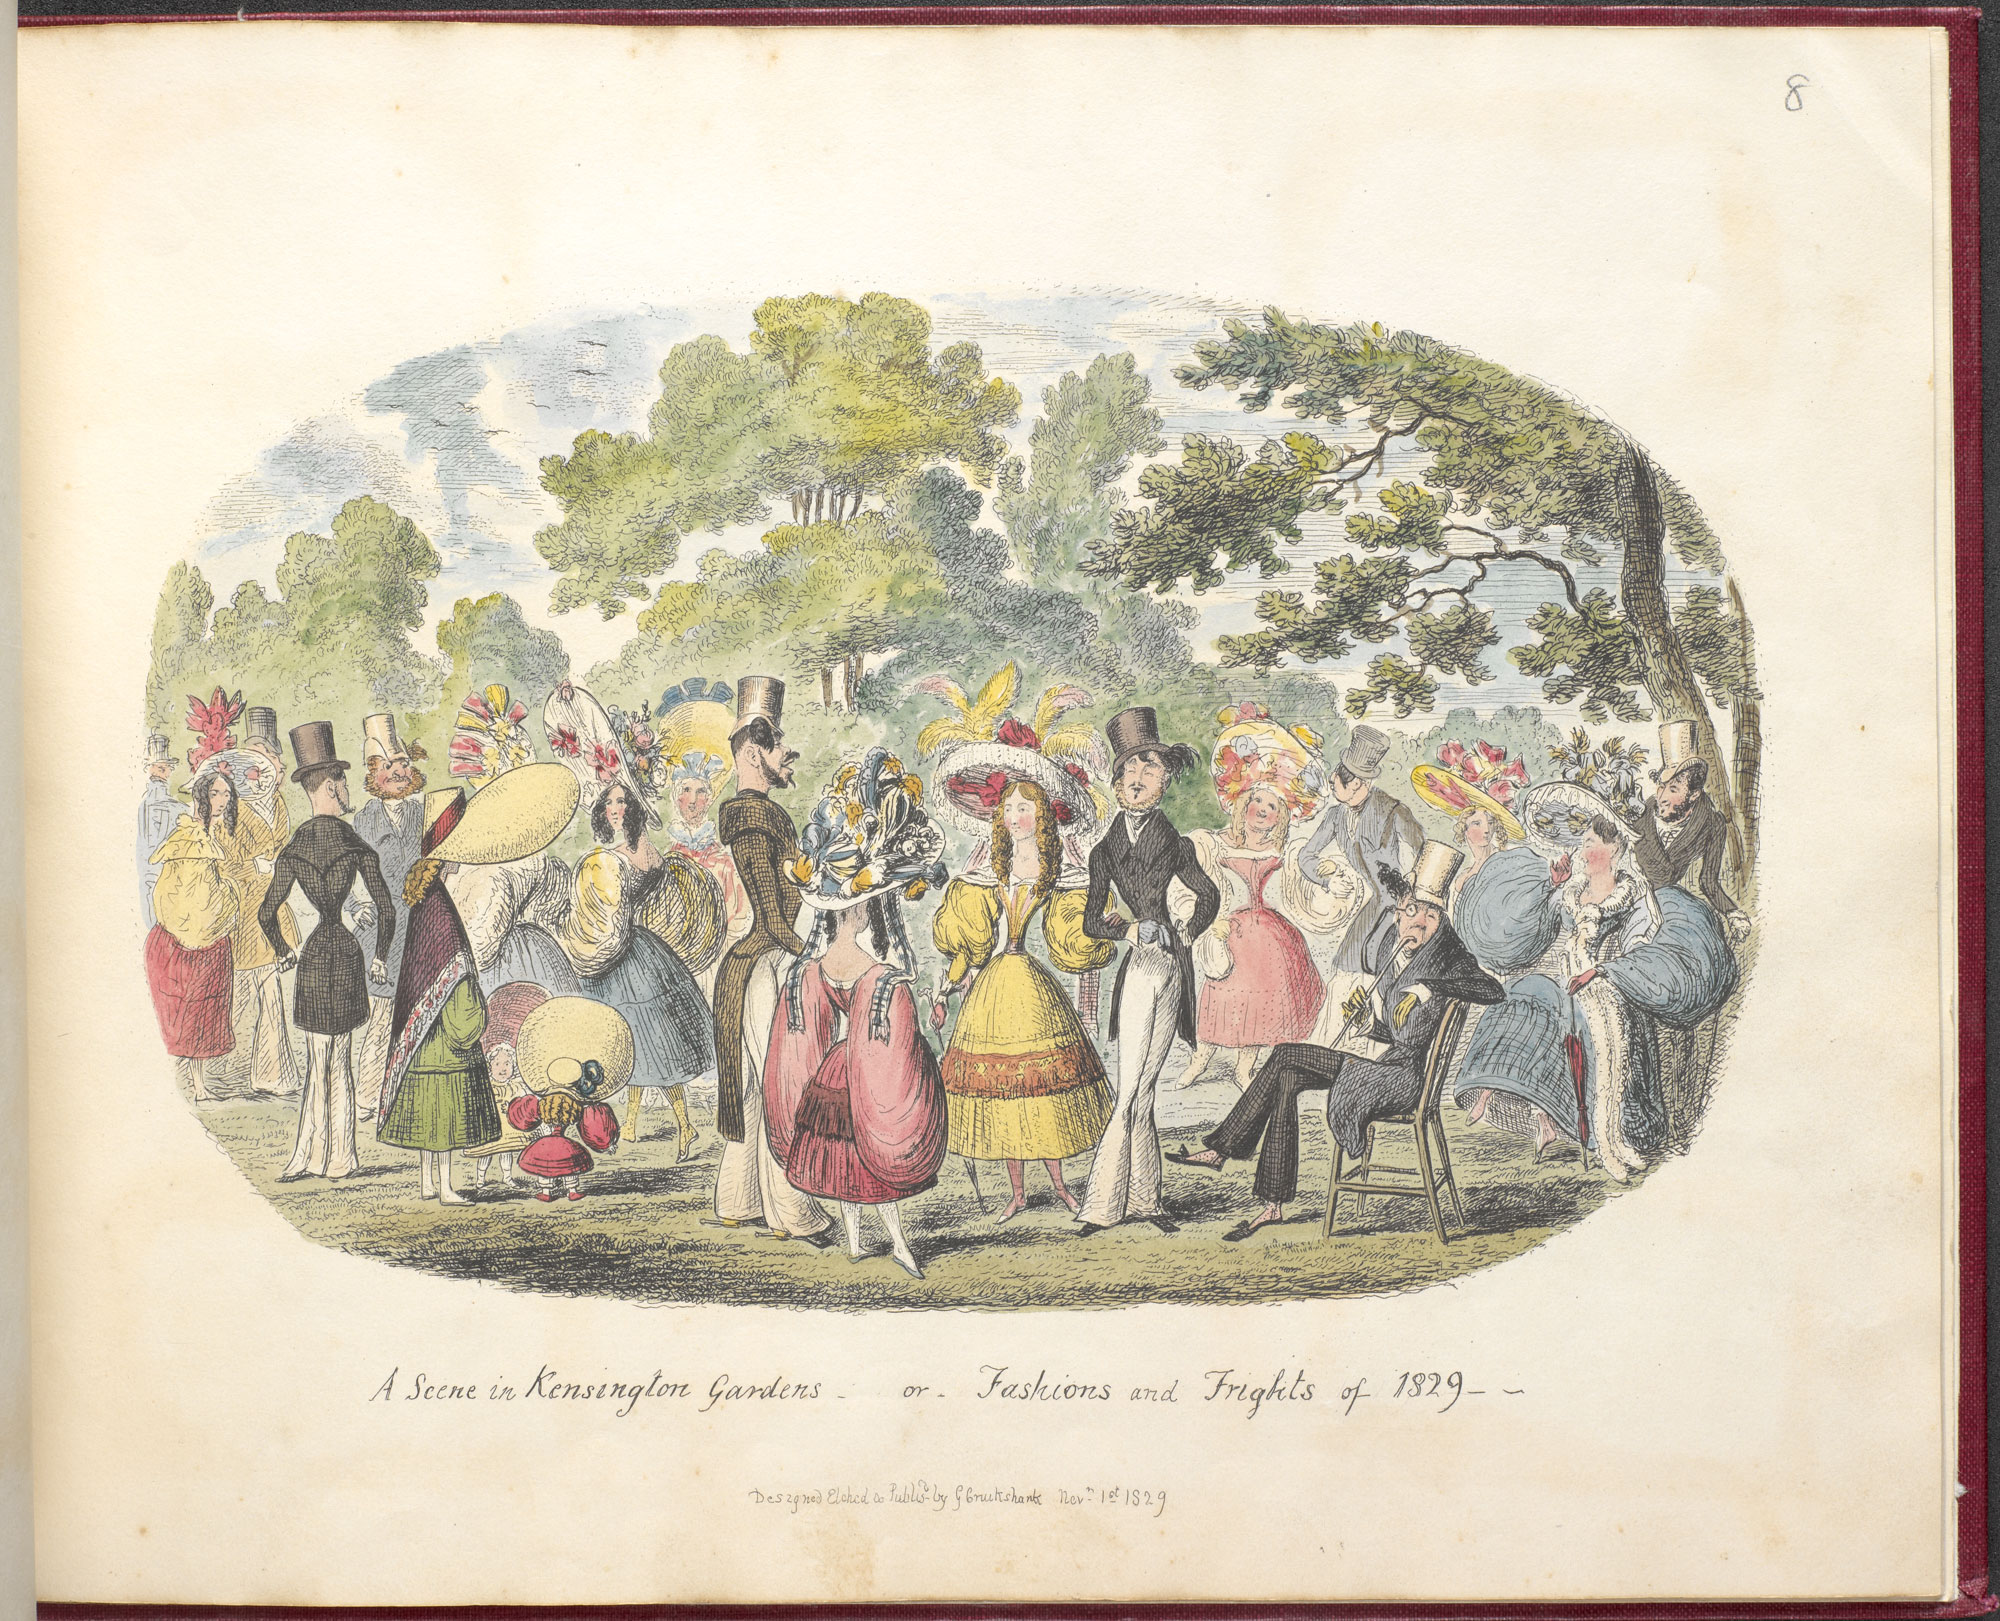 A Scene in Kensington Gardens - or, Fashion and Frights of 1829' from George Cruikshank's Scraps and Sketches [page: no. 8]